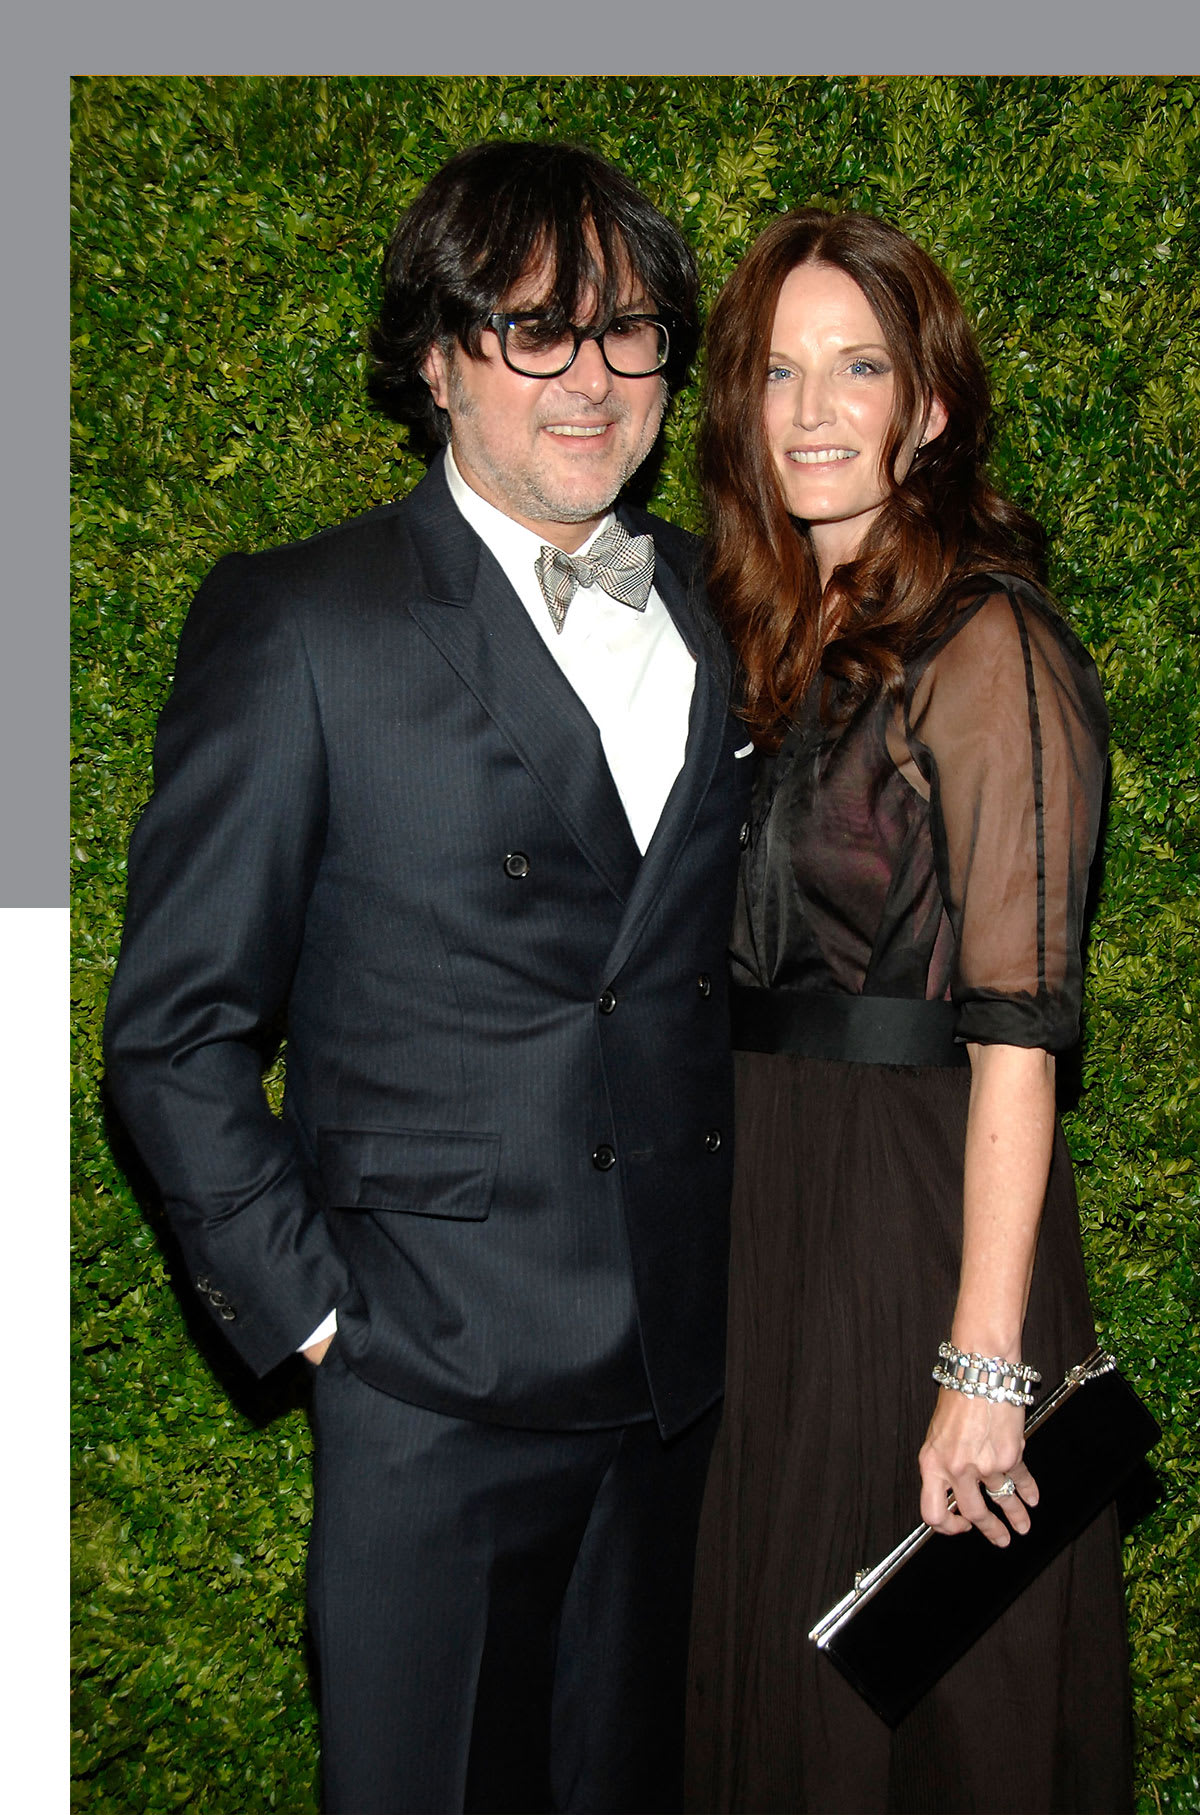 Reid and his wife Jeanne at the 2010 CFDA Awards.